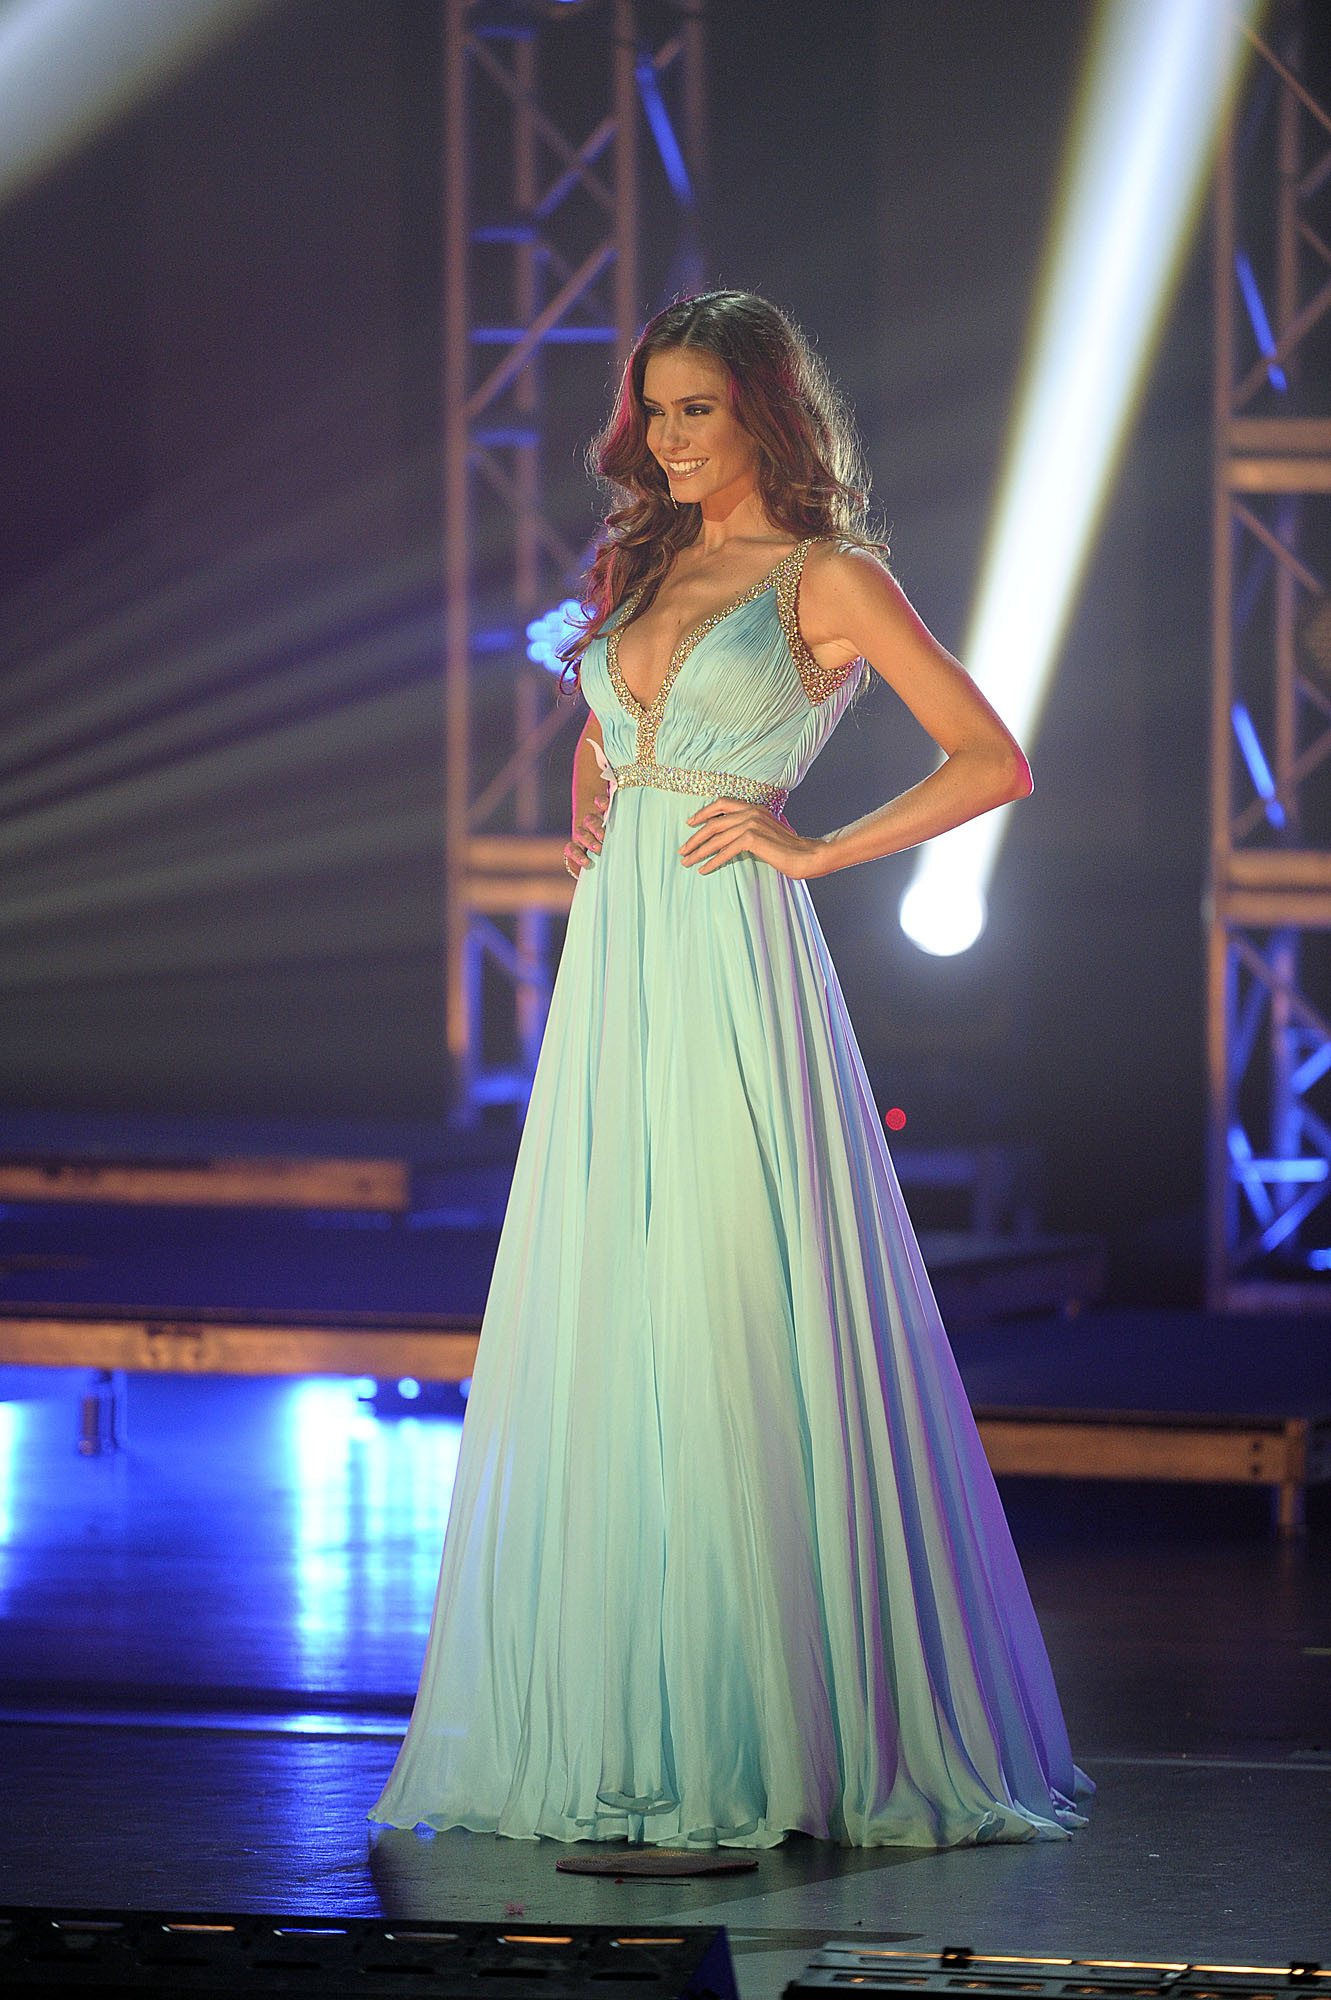 Pictures: Miss Florida USA 2014 - Miss Florida USA pageant..